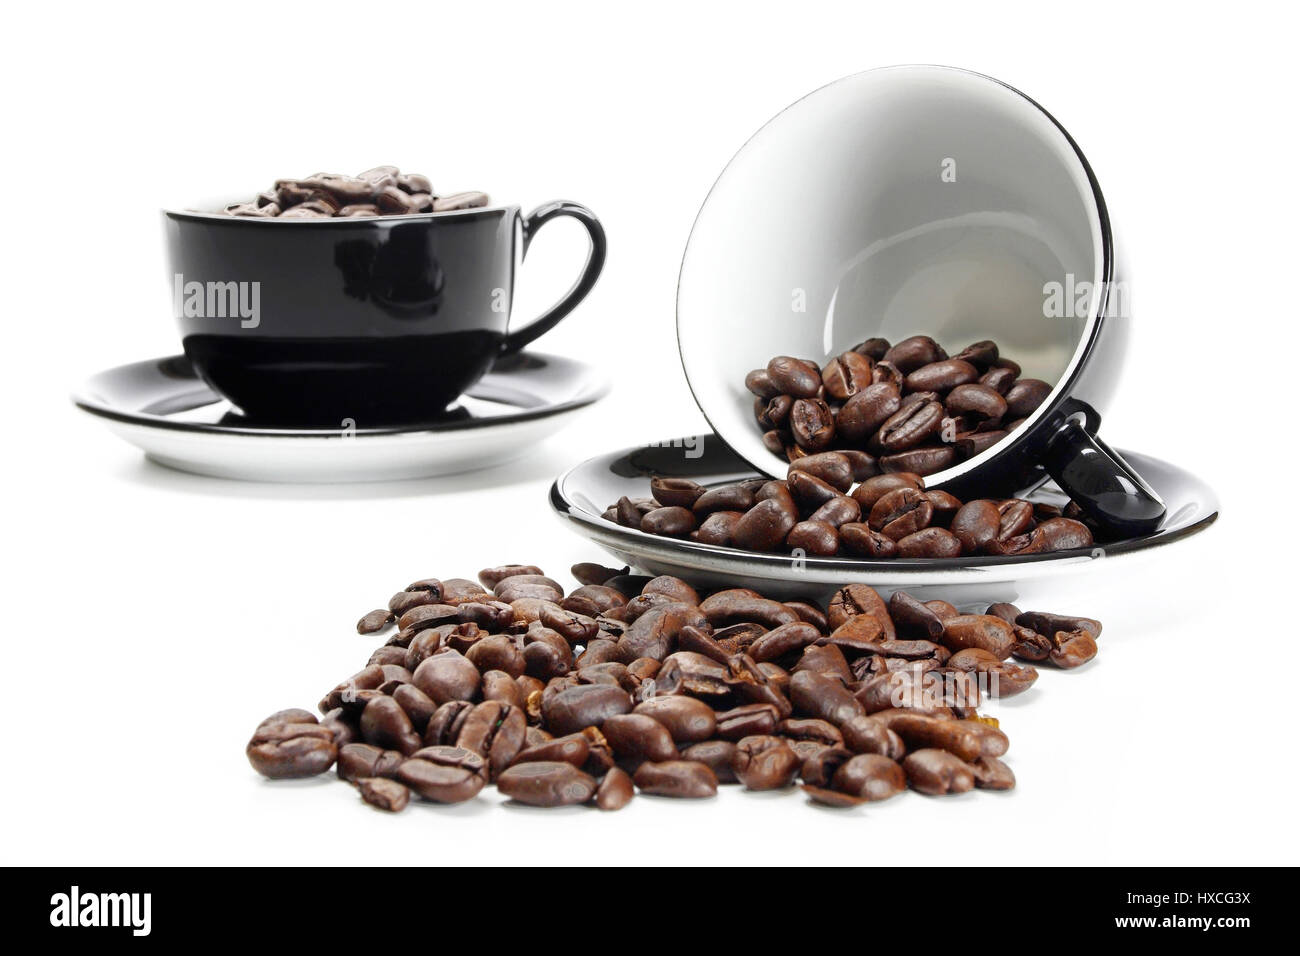 Cup of coffee - cup with Coffee - espresso, Tasse Kaffee - Cup with ...